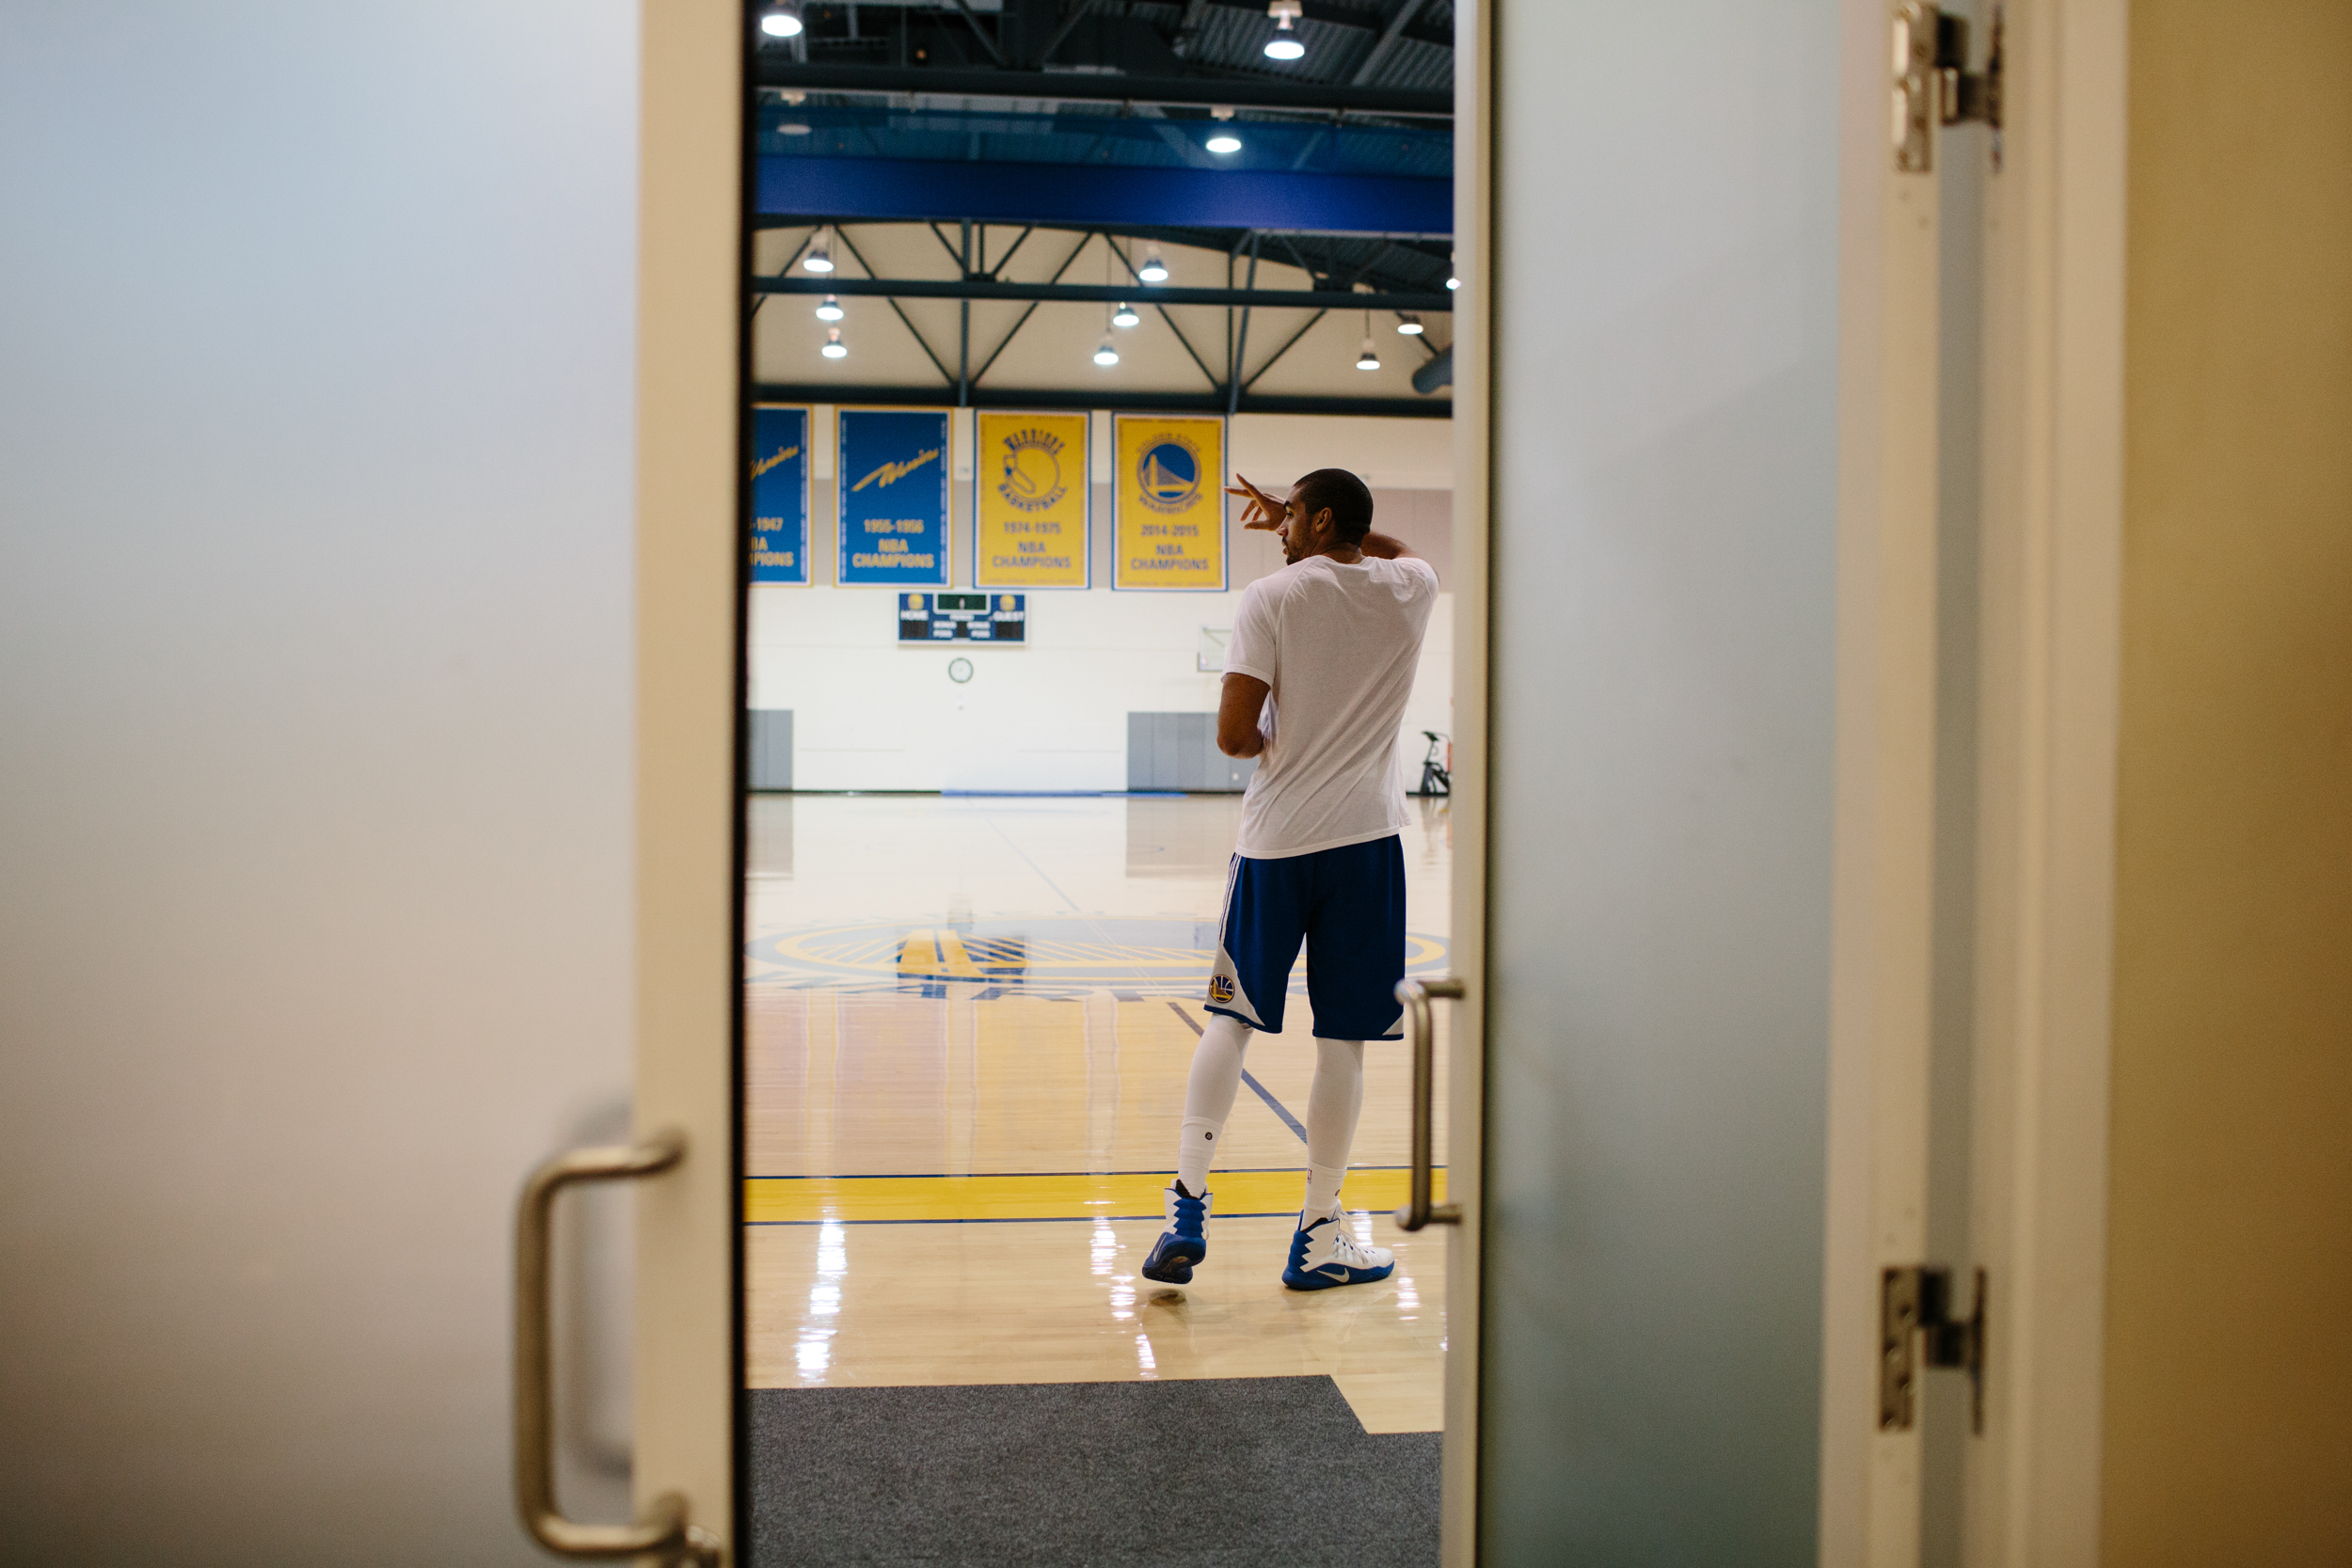 James Michael Ray McAdoo heads to the gym to stretch and digest before starting practice. He is the first to arrive, which is the norm for McAdoo.